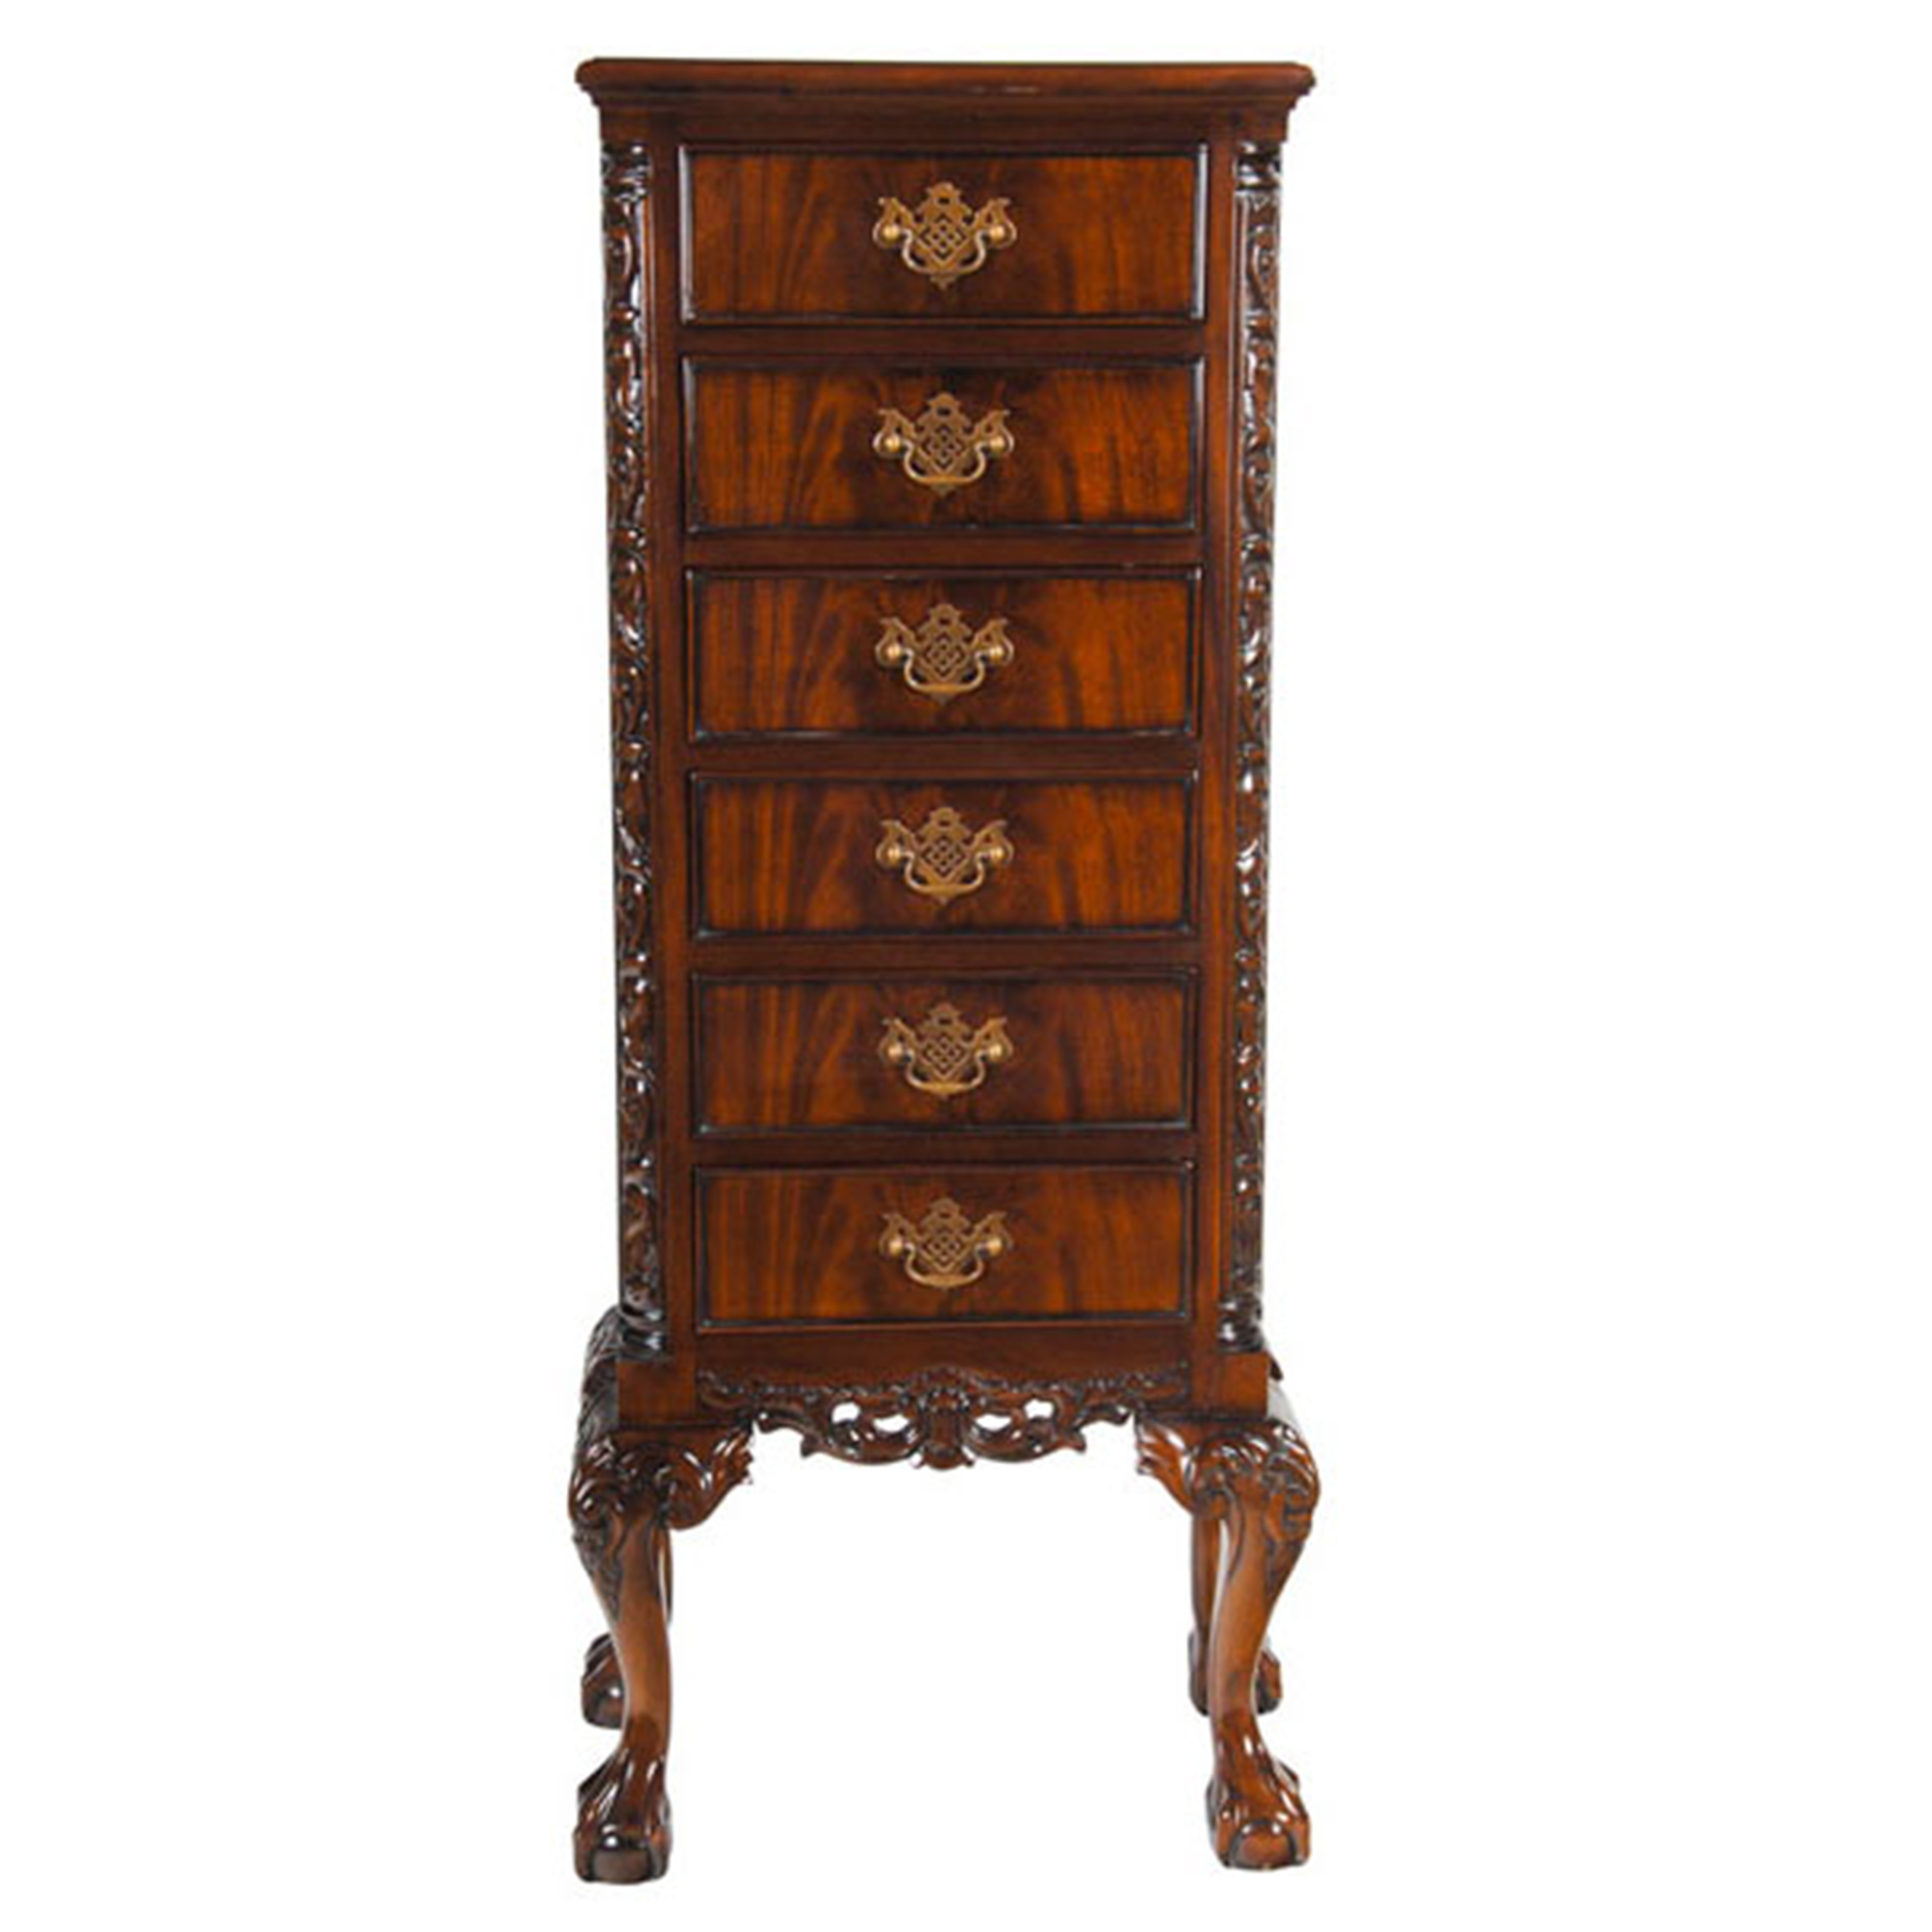 Teak Dining Room Tables Chippendale Mahogany Lingerie Chest Niagara Furniture